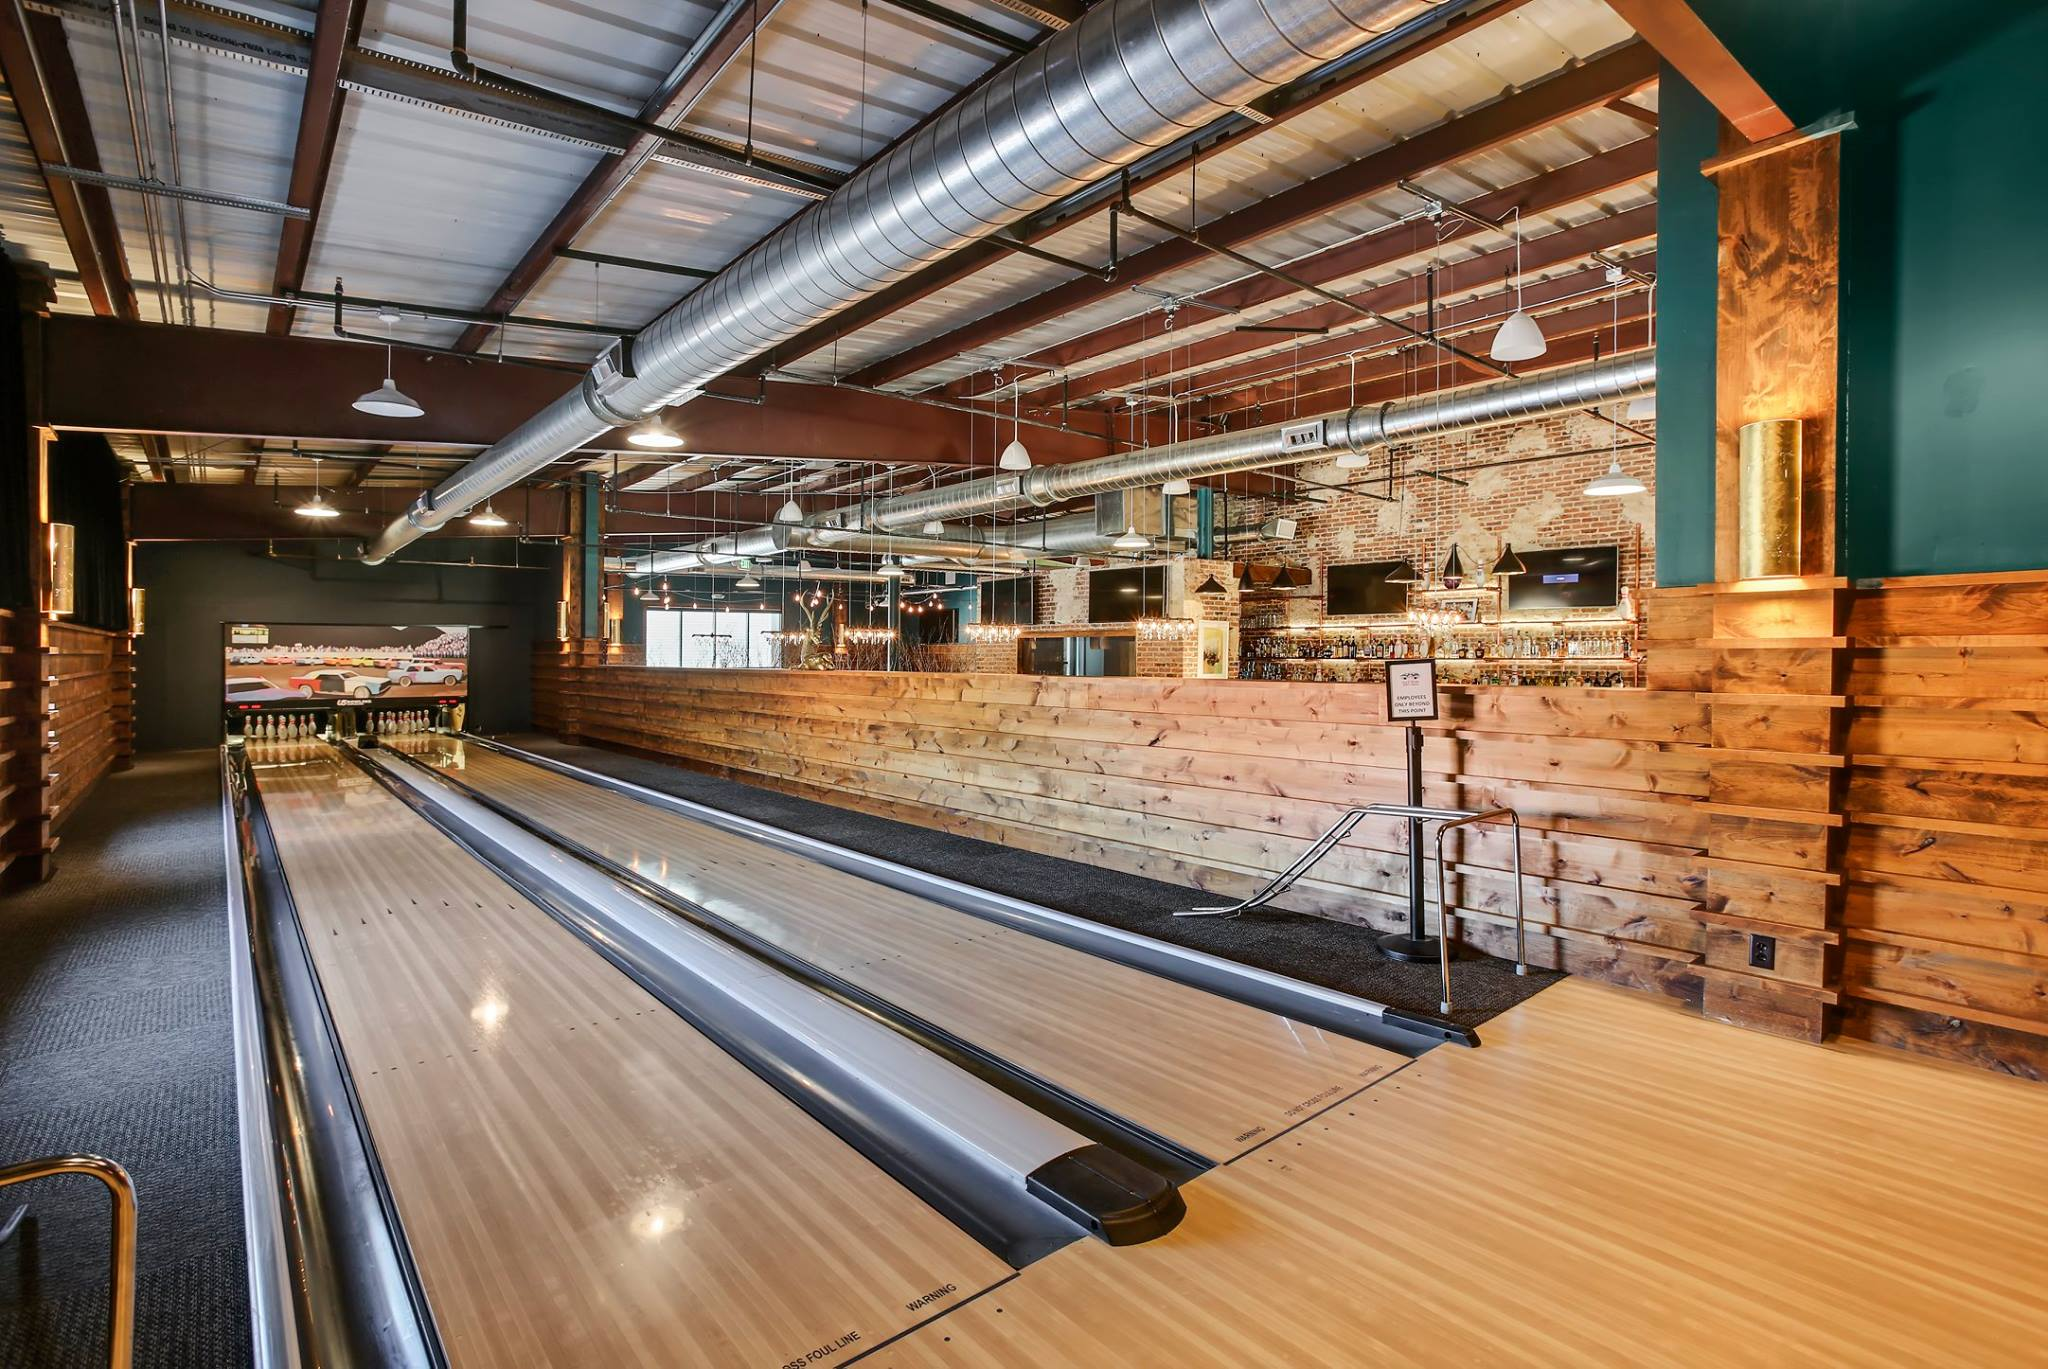 Hole Bowl - Bowling Business Investment